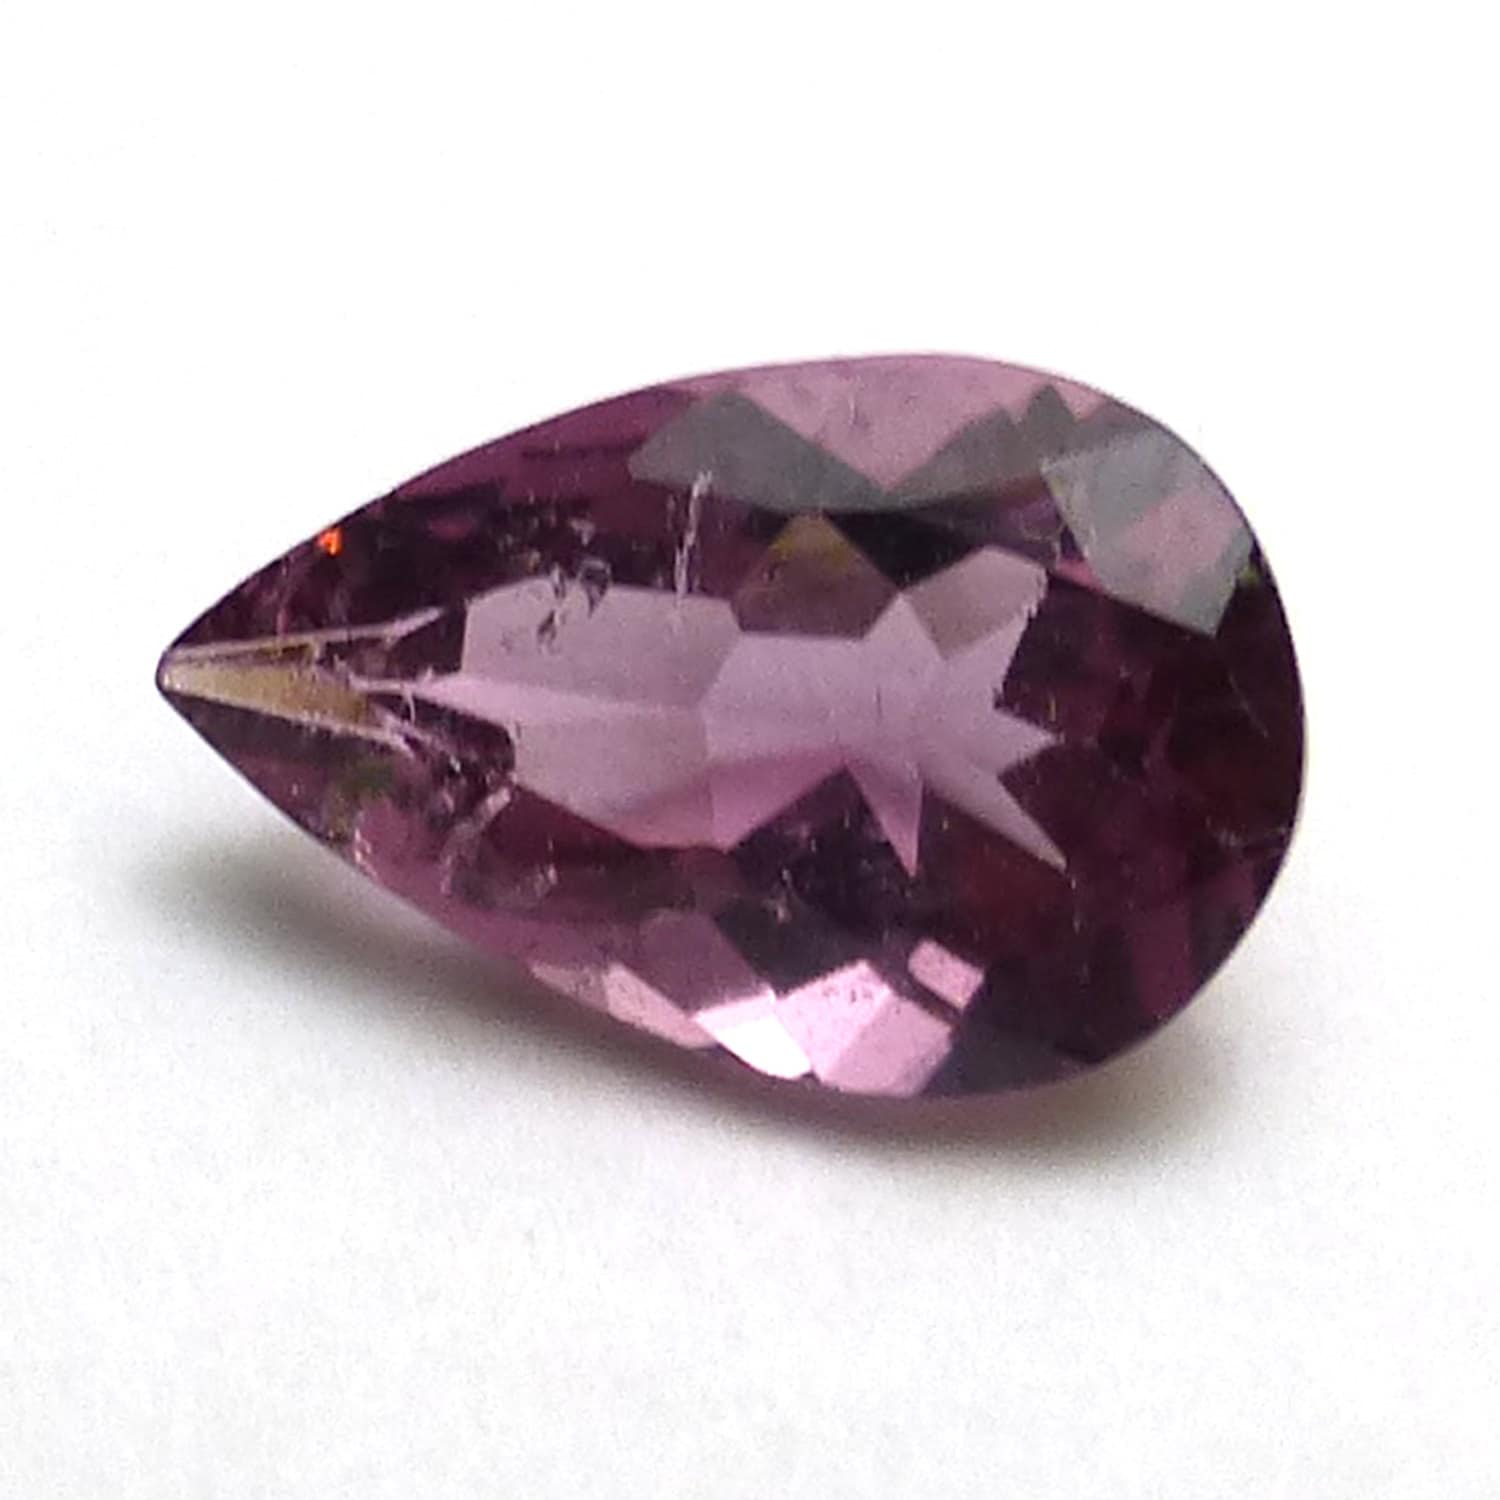 from blog omi gemstones sapphire purple insights newbie sapphires gems stone color colored a gemstone